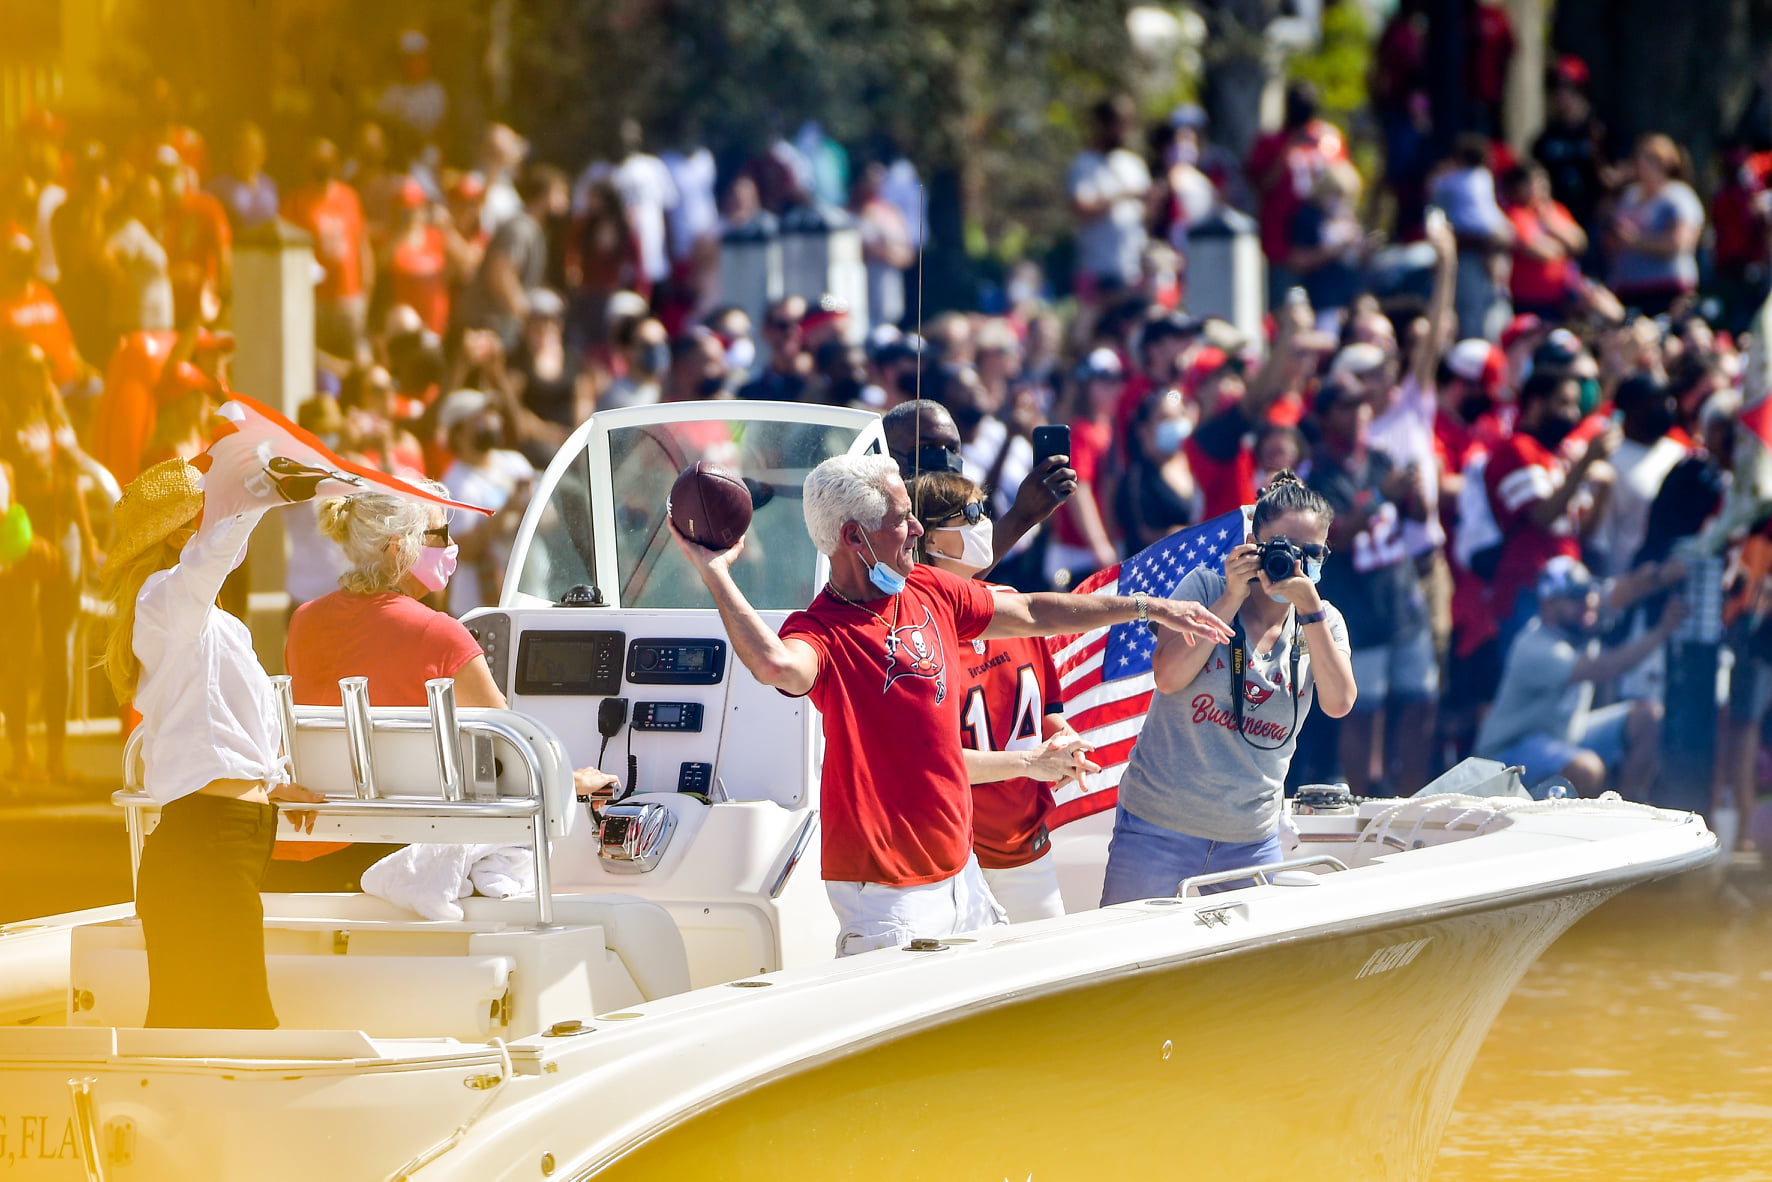 US Congressman Charlie Crist joined fans in a boat parade celebrating Tampa Bay Buccaneers Super Bowl LV win, Wednesday, February 10, 2021. (Photo by Harry Castiblanco / Florida National News)